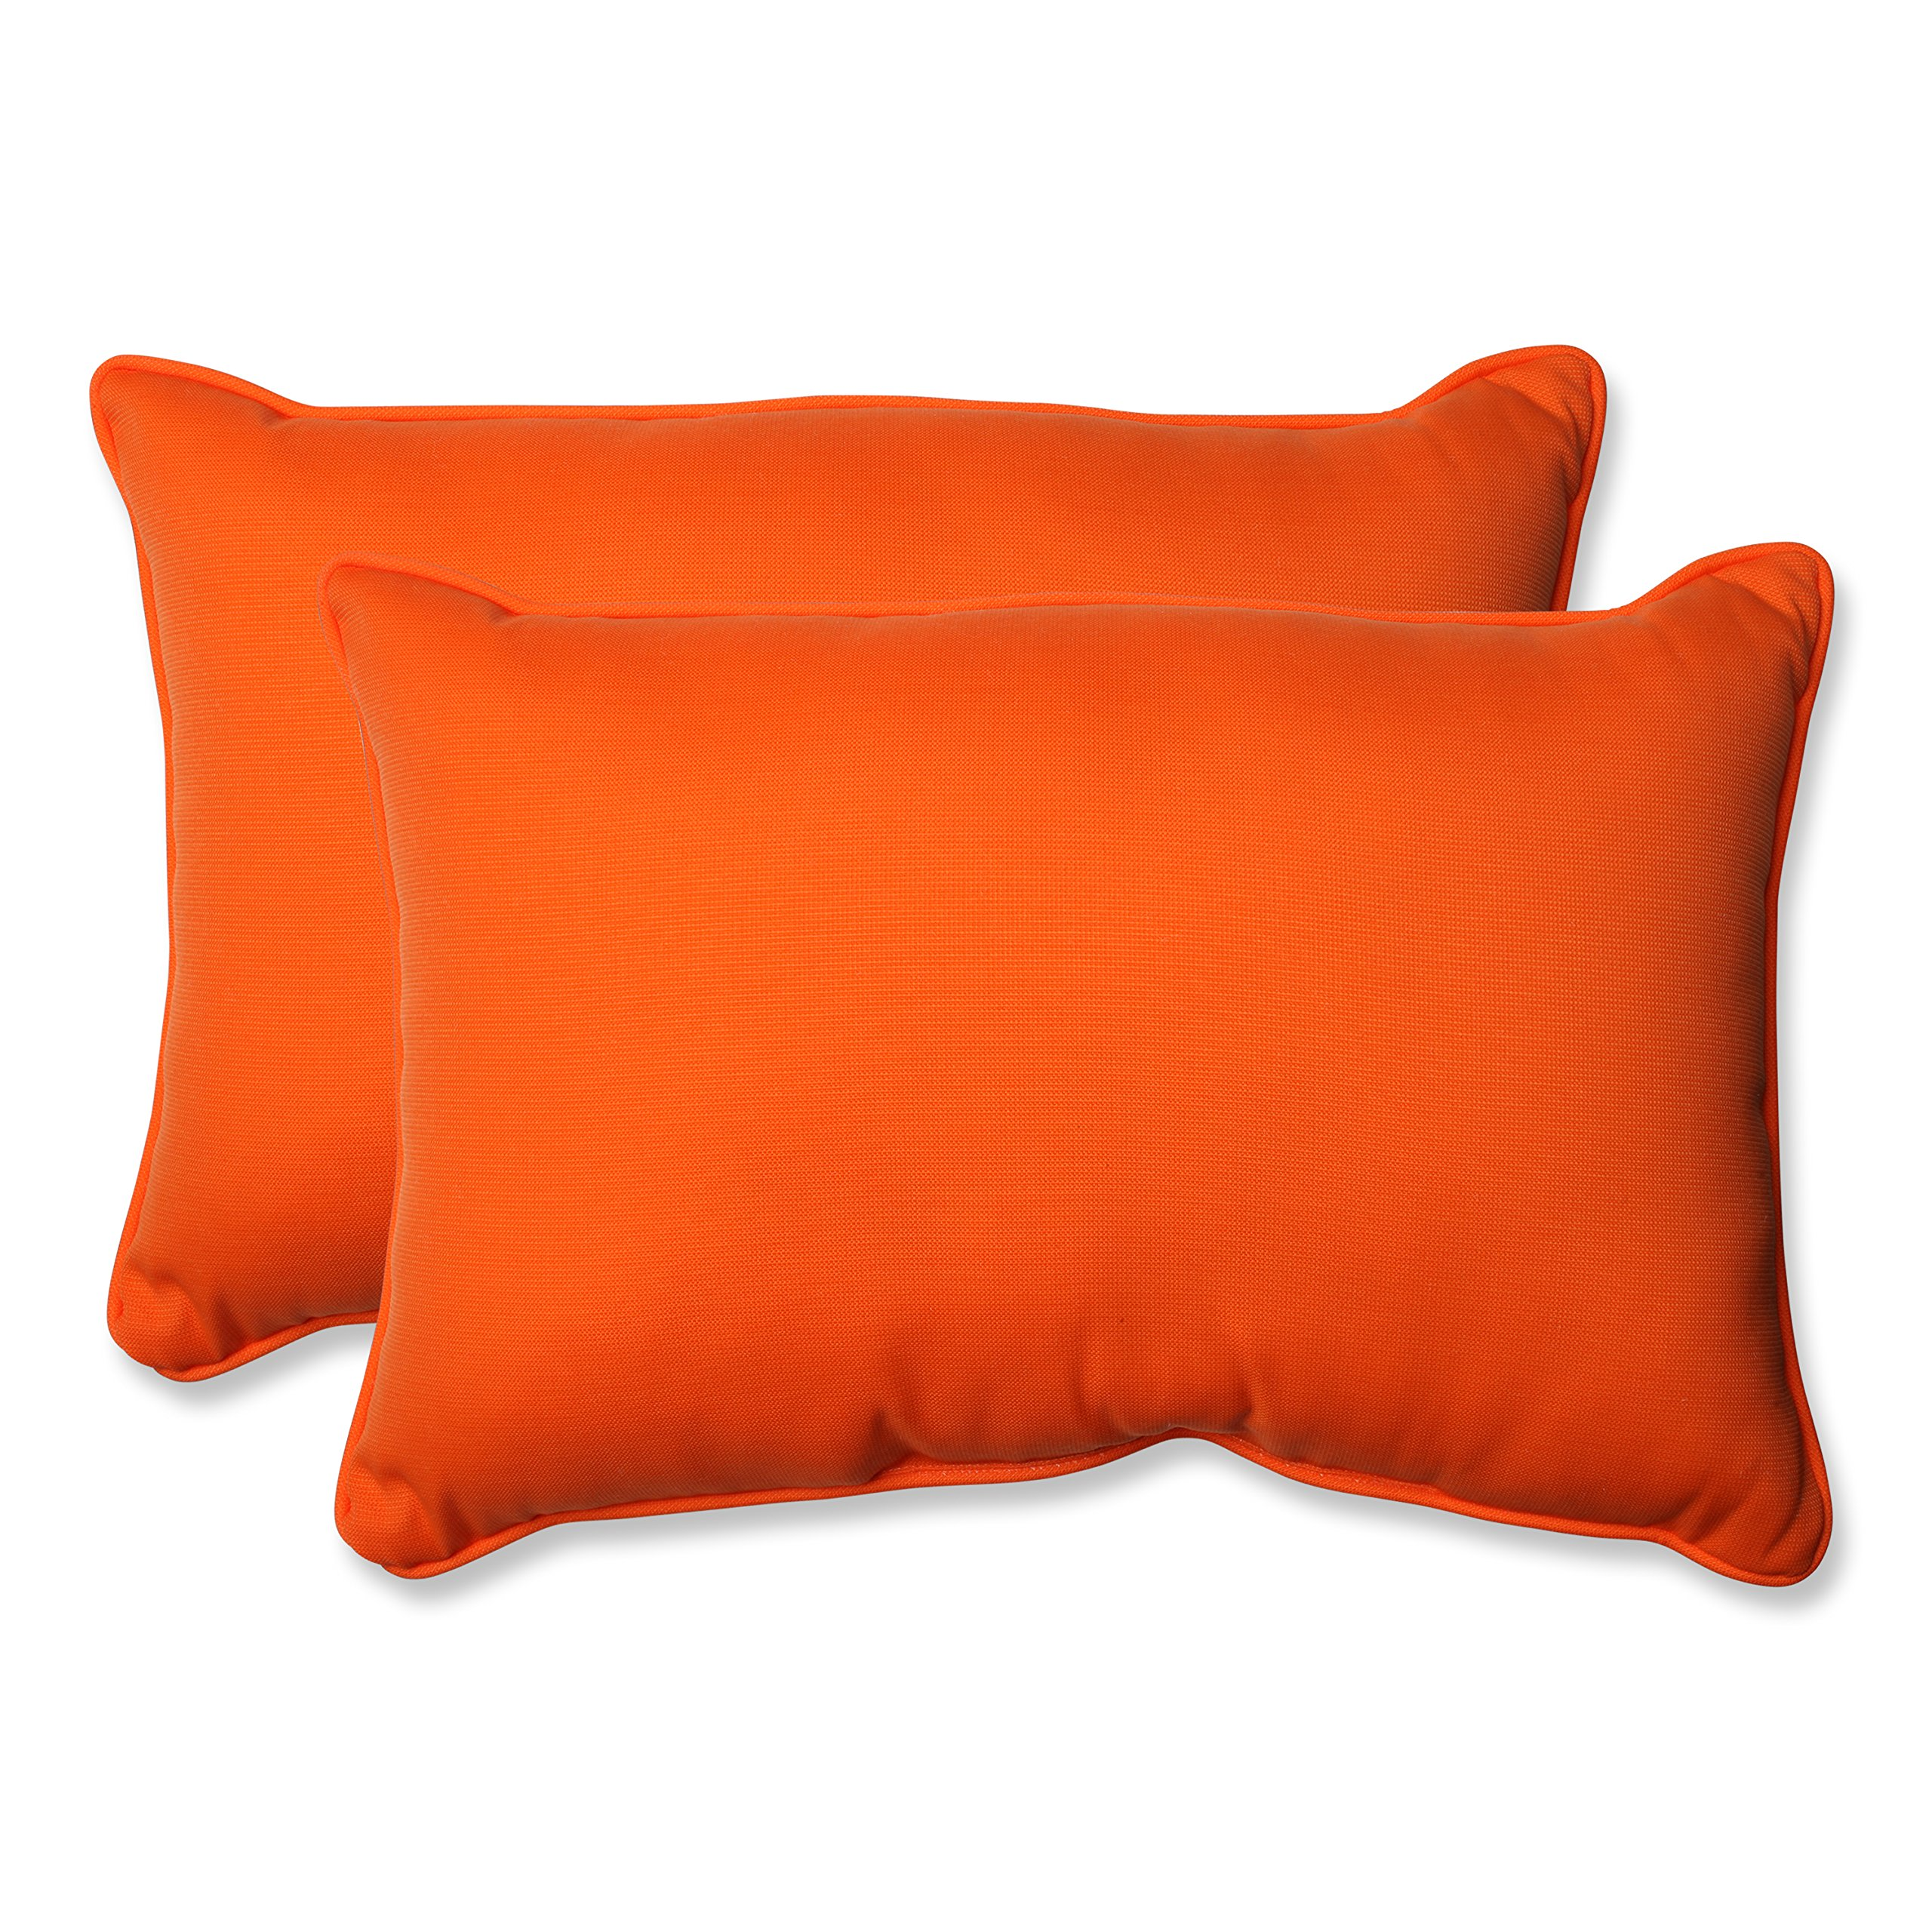 Pillow Perfect Indoor/Outdoor Sundeck Corded Oversized Rectangular Throw Pillow, Orange, Set of 2 by Pillow Perfect